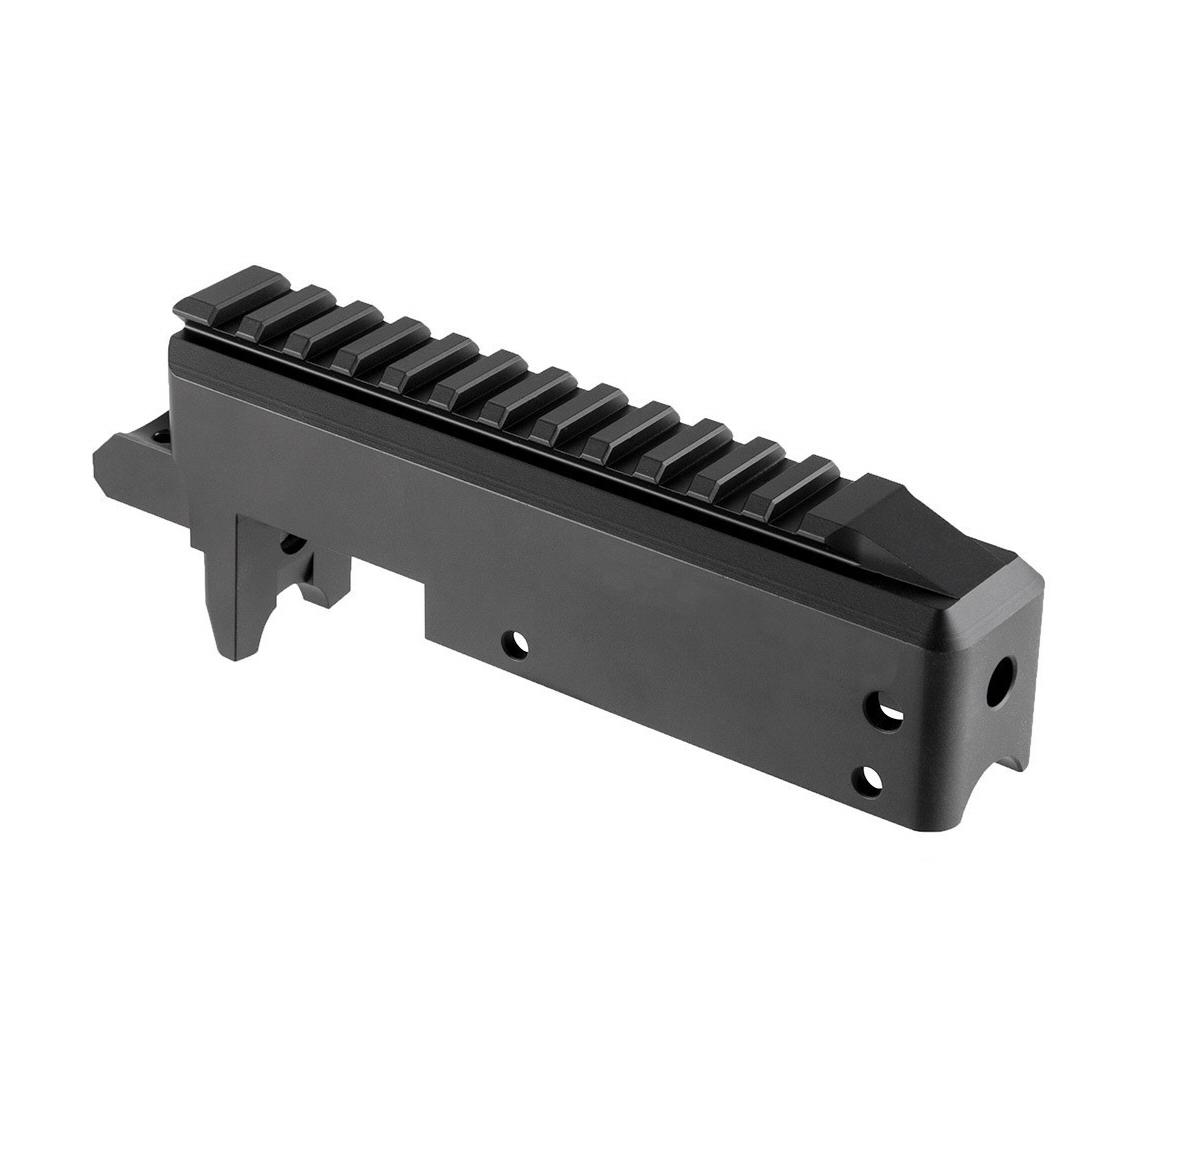 BRN-22 Stripped Railed Receiver for Ruger 10/22